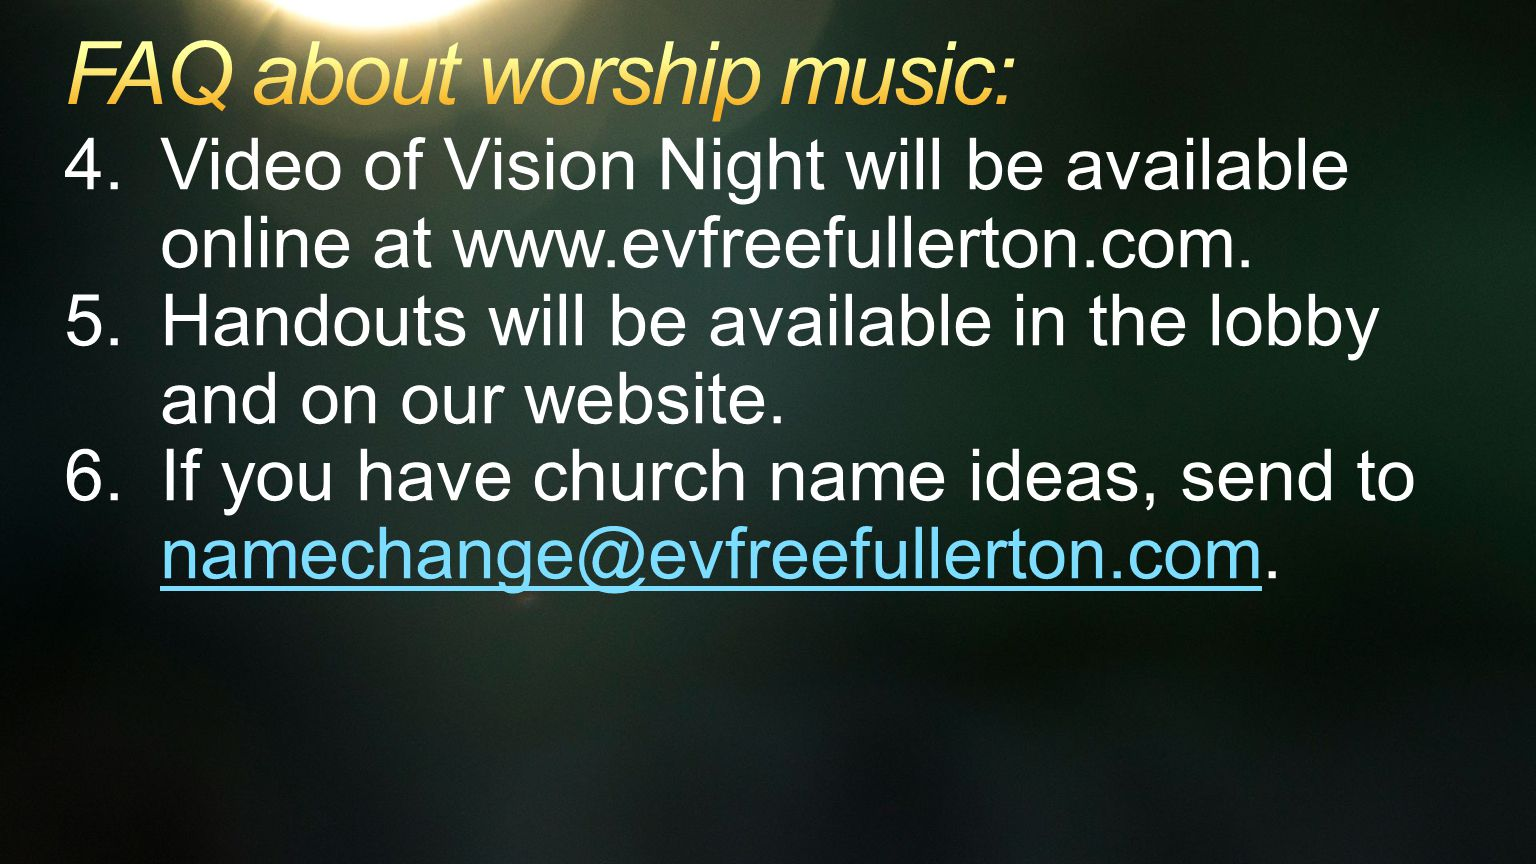 4. 4.Video of Vision Night will be available online at www.evfreefullerton.com.